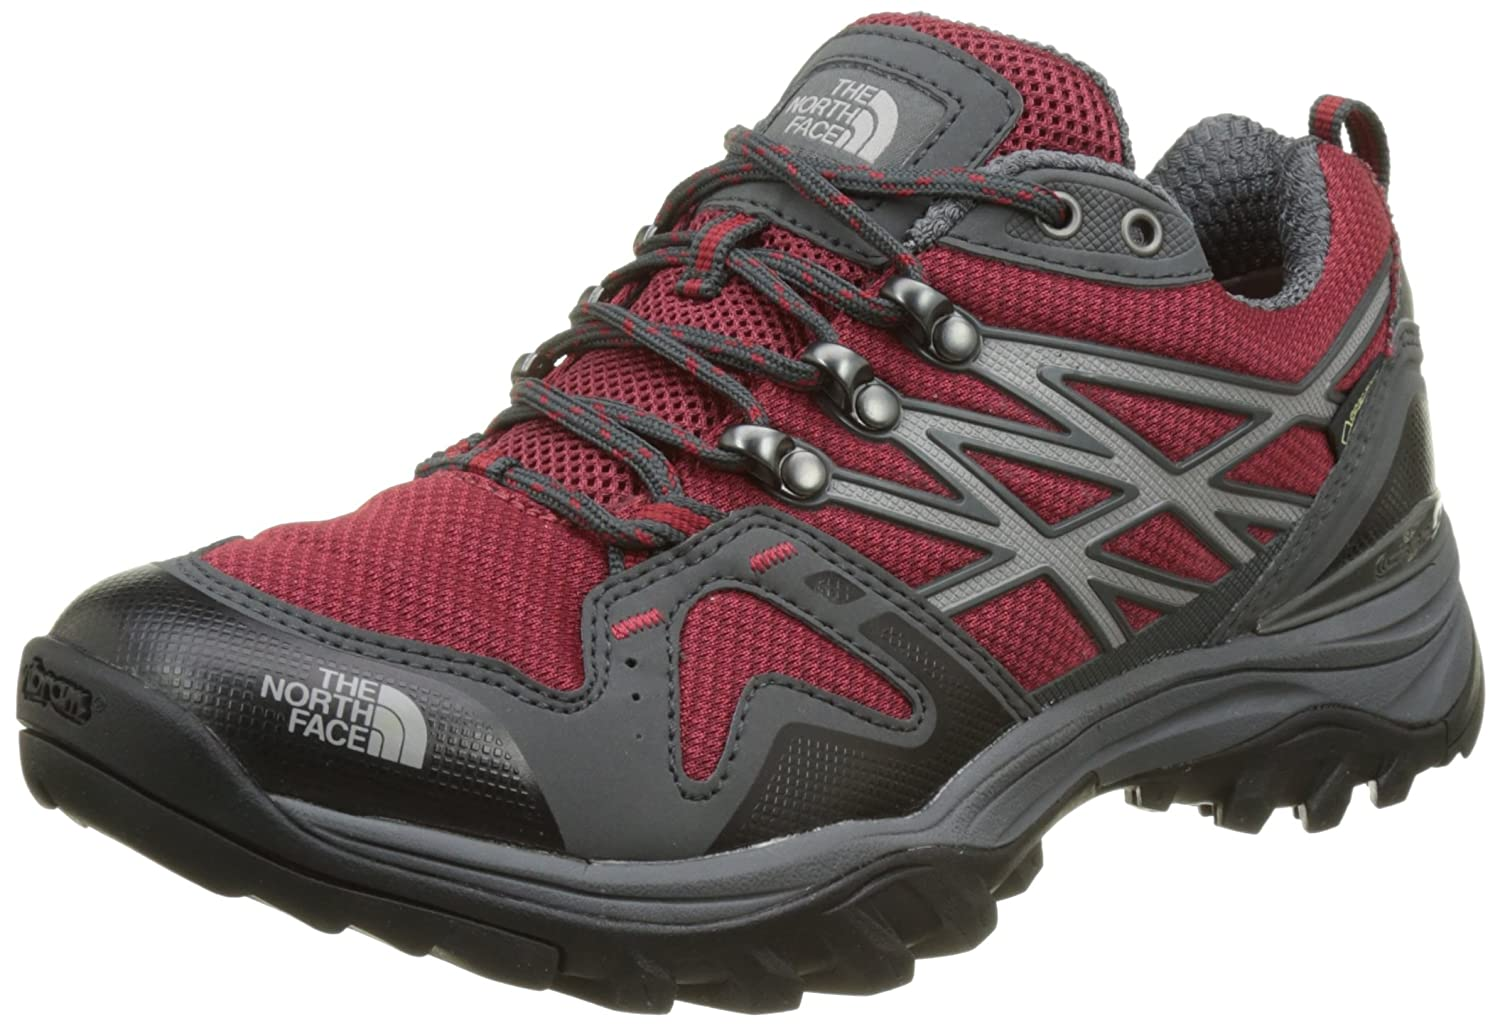 The North Face M HH Fp GTX (EU), Botas de Senderismo para Hombre